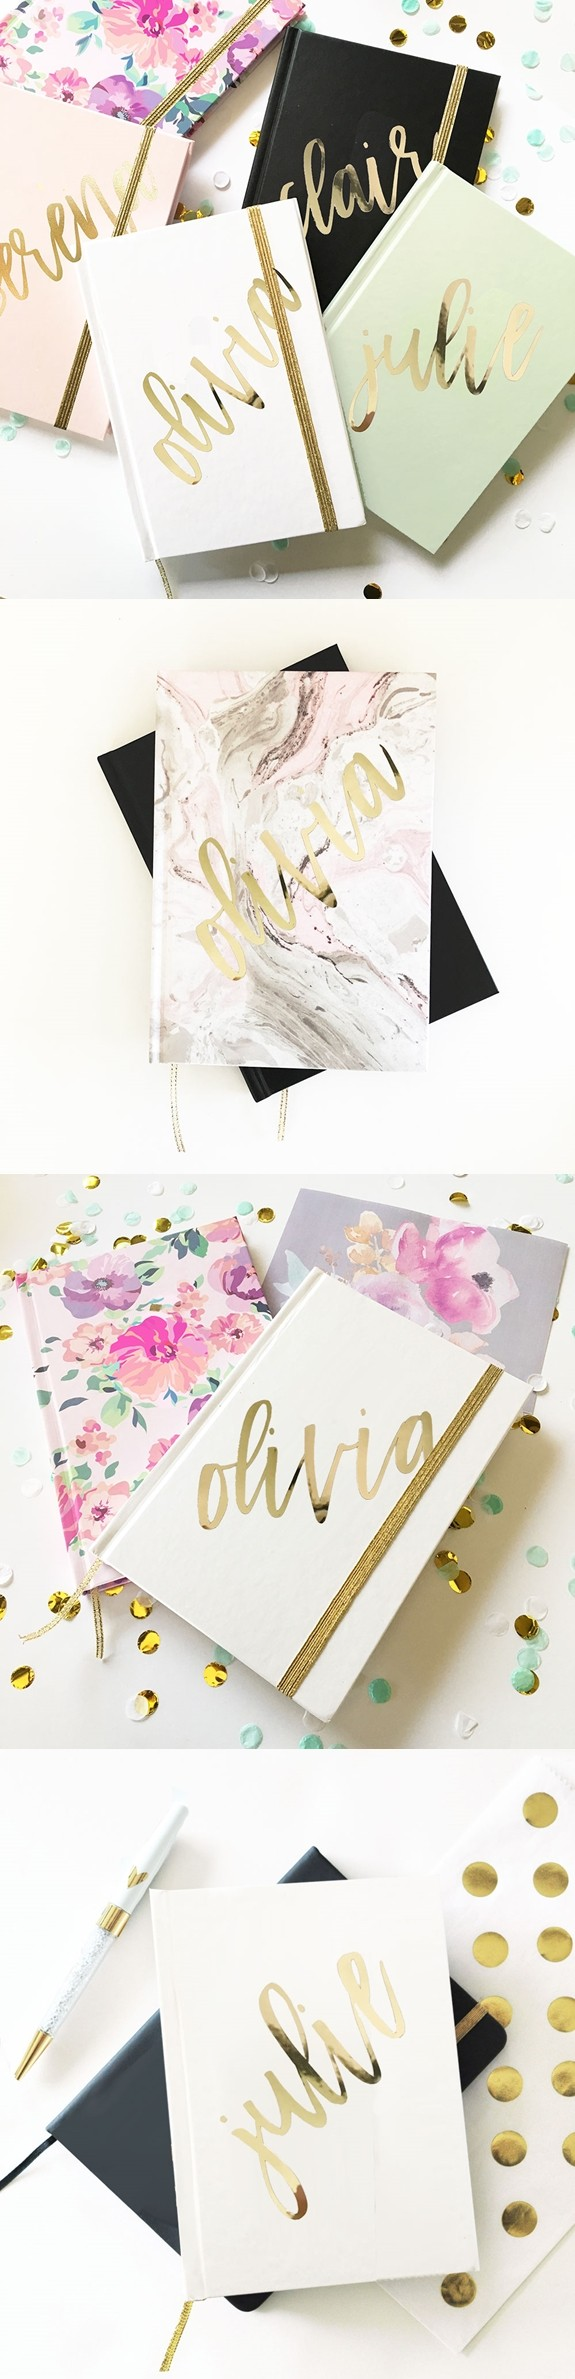 Event Blossom Metallic Gold Script Name Journal (6 Colors/Designs)